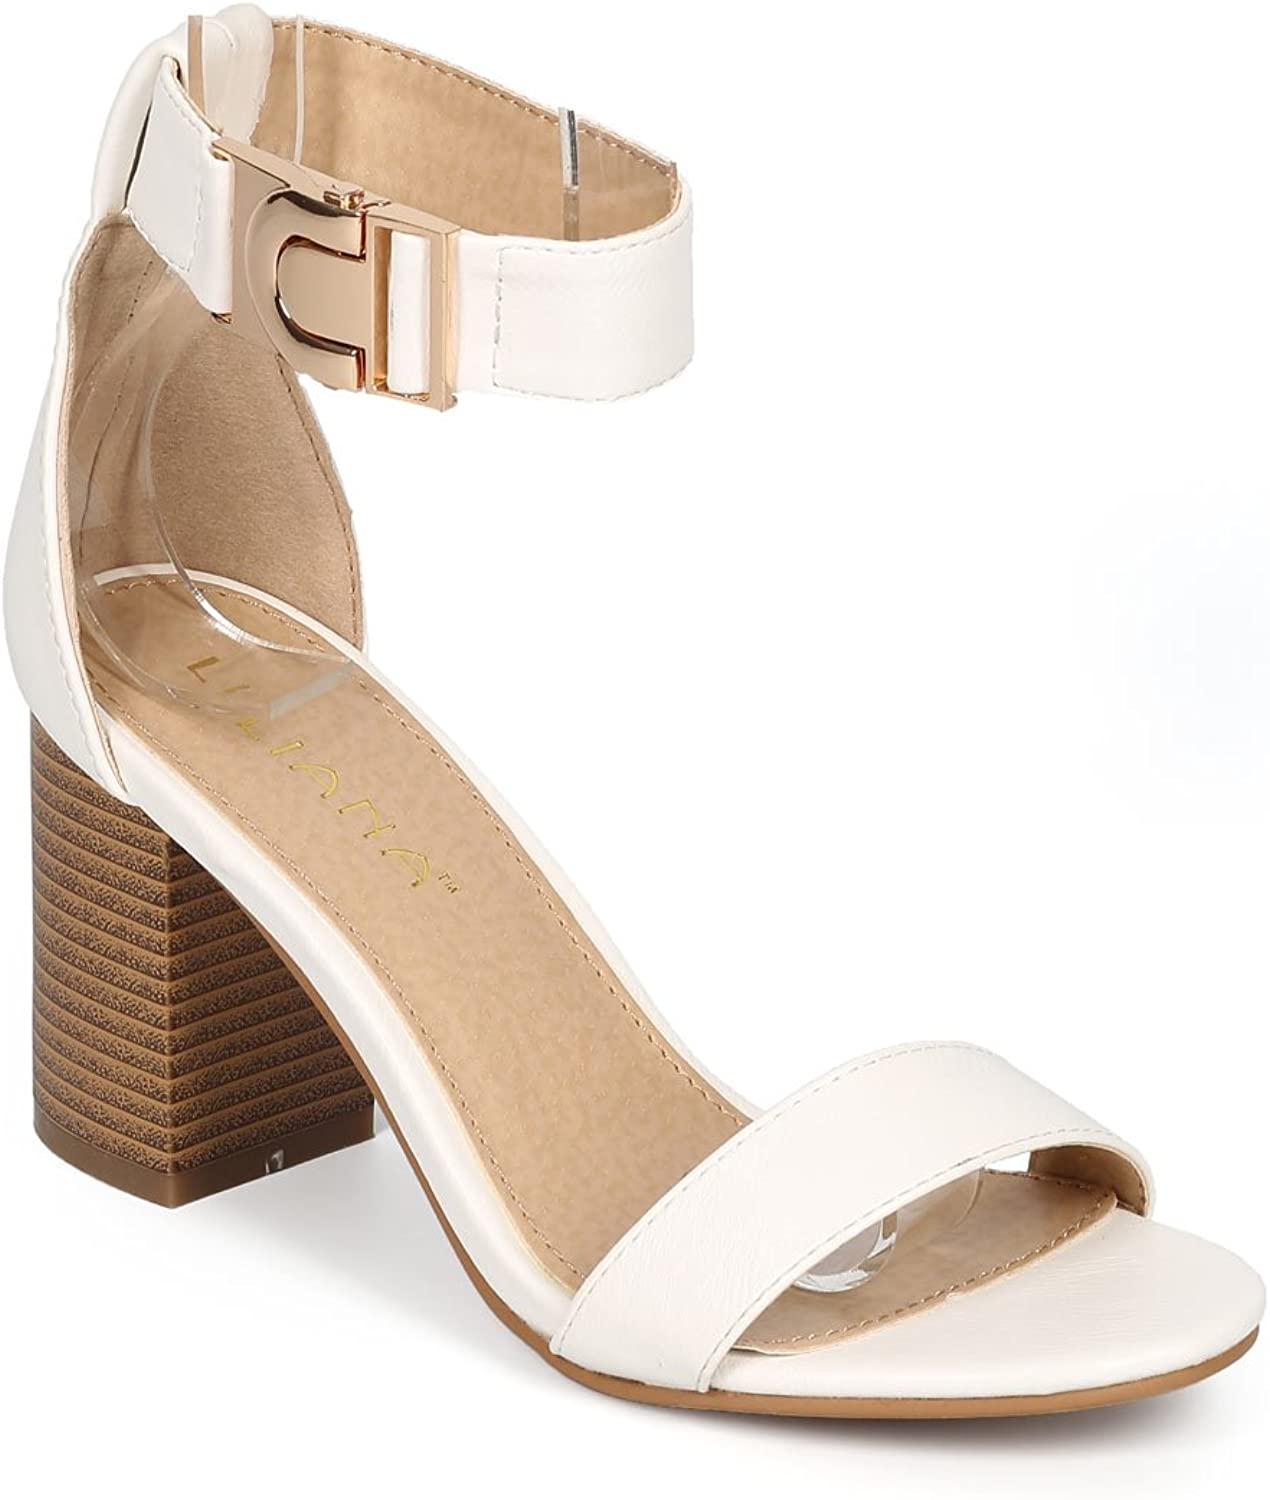 Liliana Women Leatherette Open Toe Clasp Ankle Strap Stacked Sandal CG04 - White Leatherette